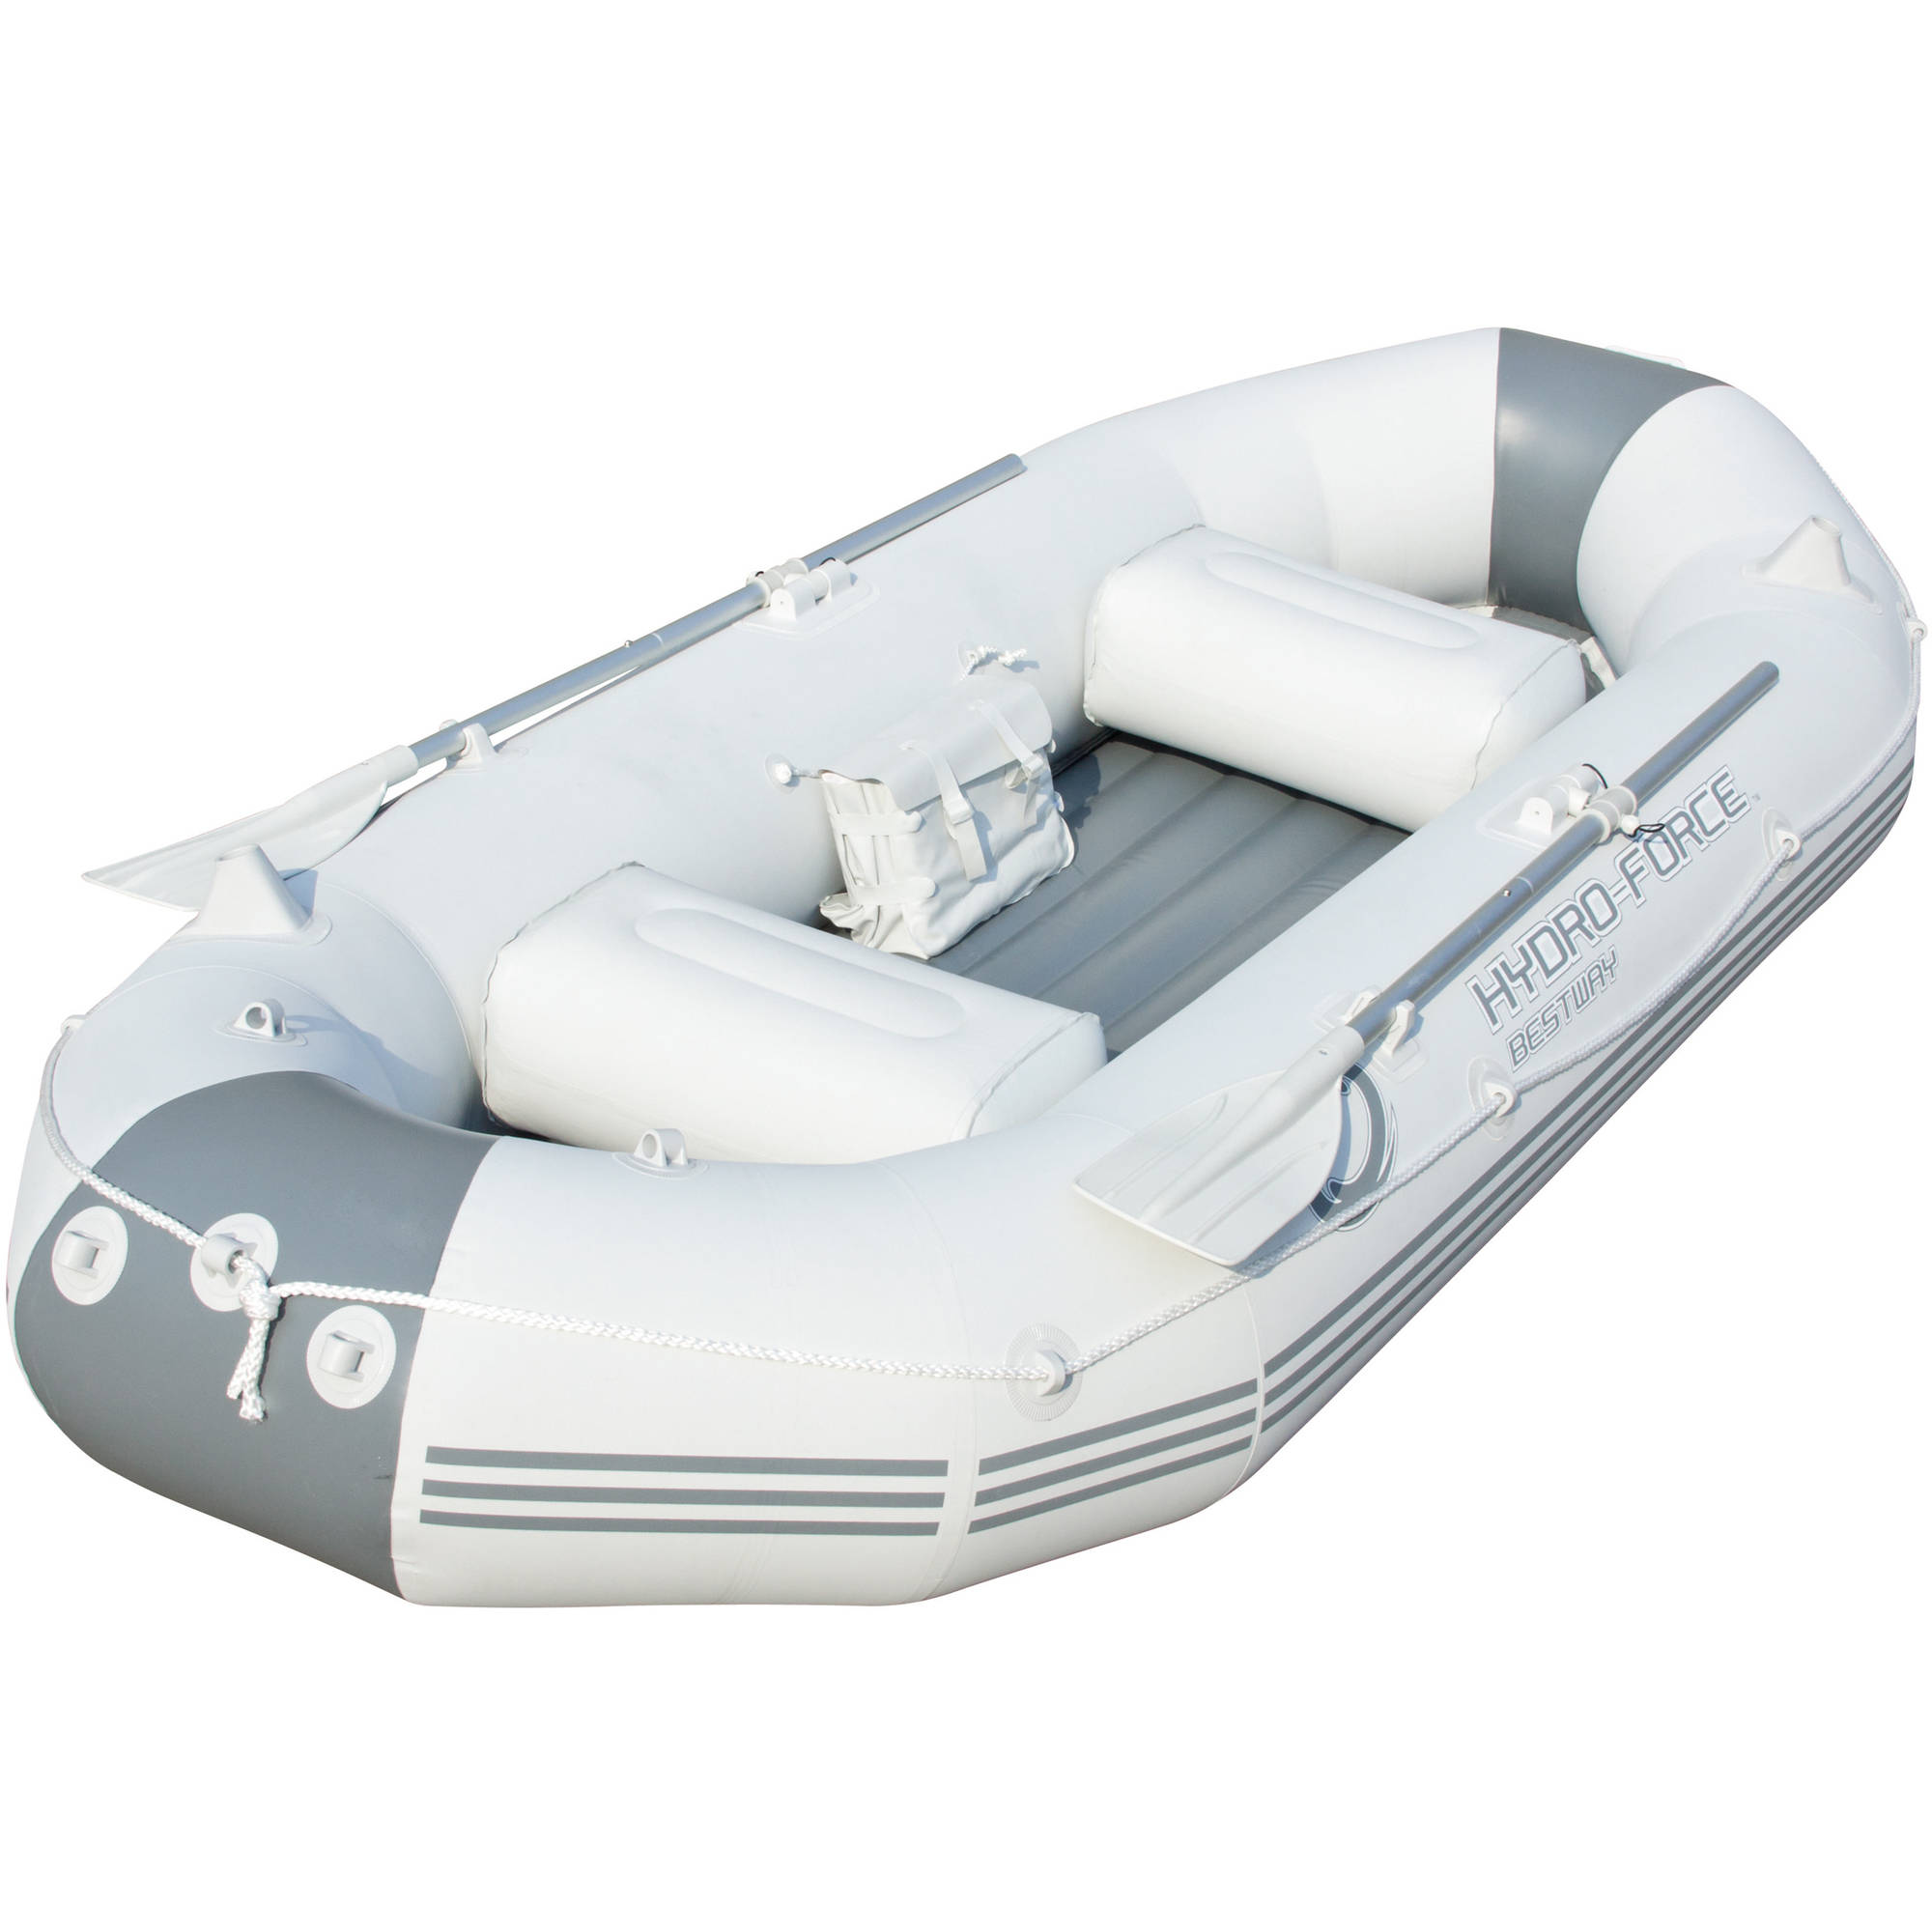 "Bestway 115"" x 50"" x 18"" Hydro-Force Marine Pro Inflatable Boat   Raft 